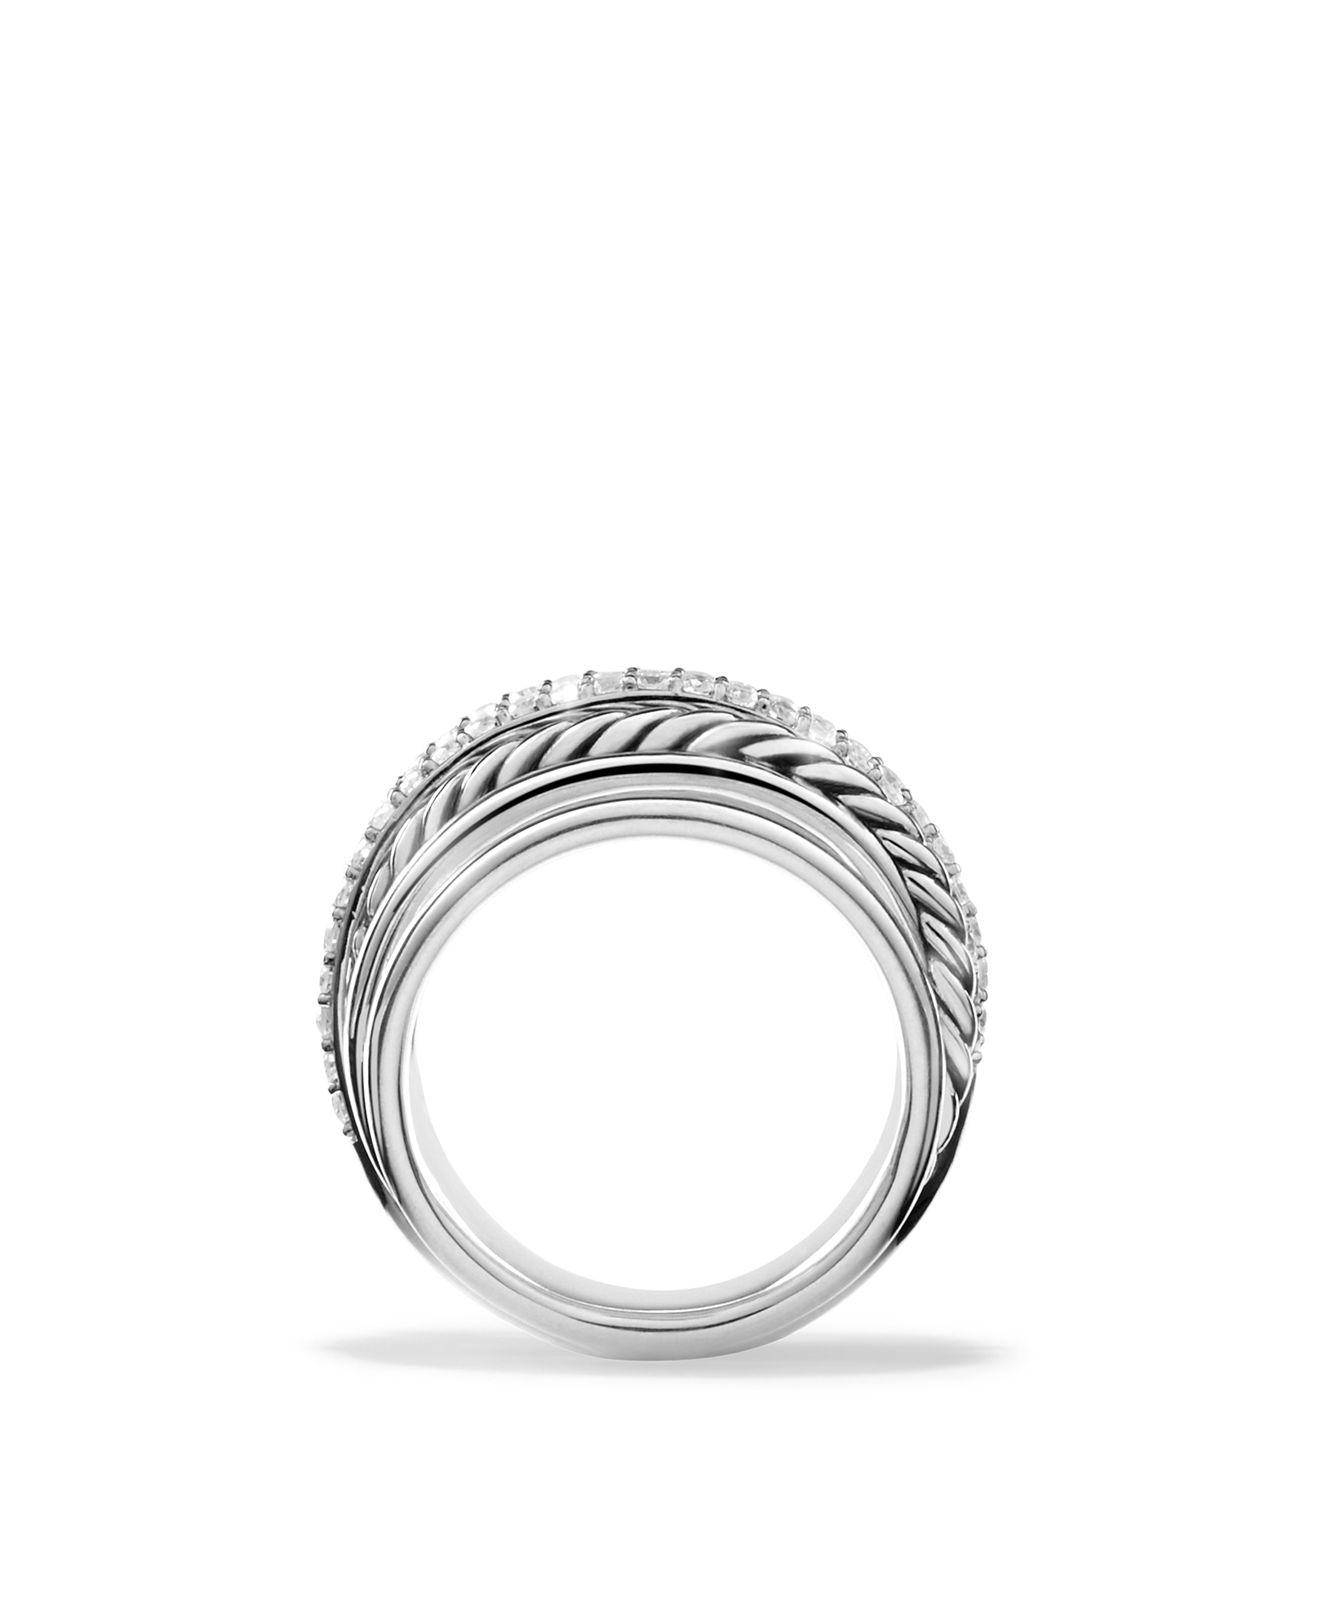 David Yurman Crossover Dome Ring With Diamonds In Metallic | Lyst Pertaining To Bloomingdales Wedding Bands (View 13 of 16)